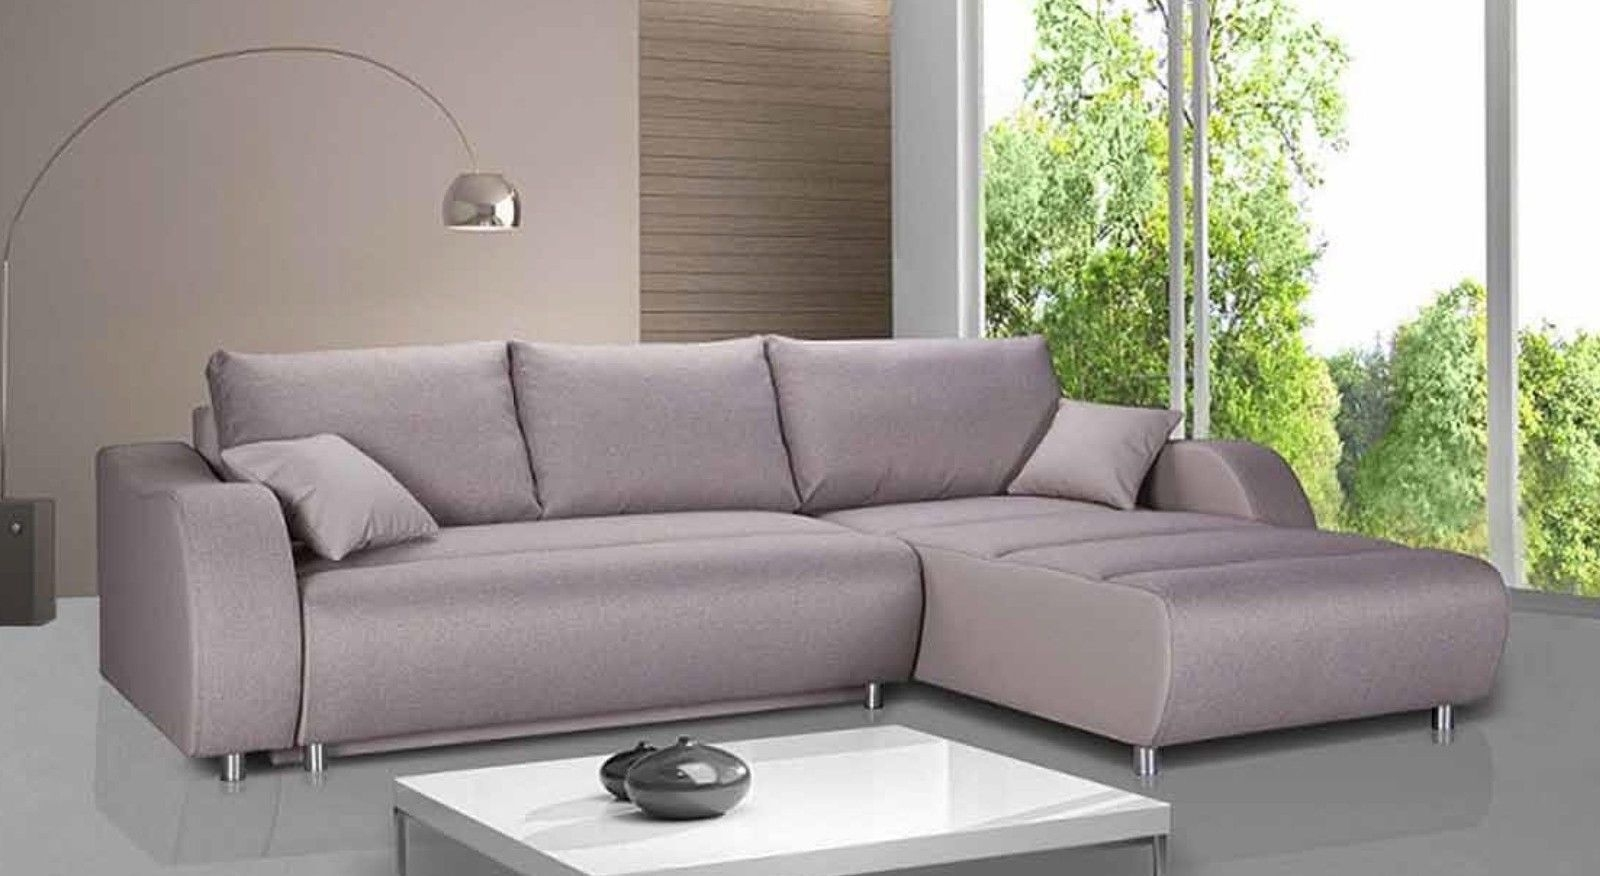 Sofa Pay Monthly Sofa Pay Monthly Modern Living Room Sofa On Low With Regard To Cheap Corner Sofa Beds (Image 12 of 15)